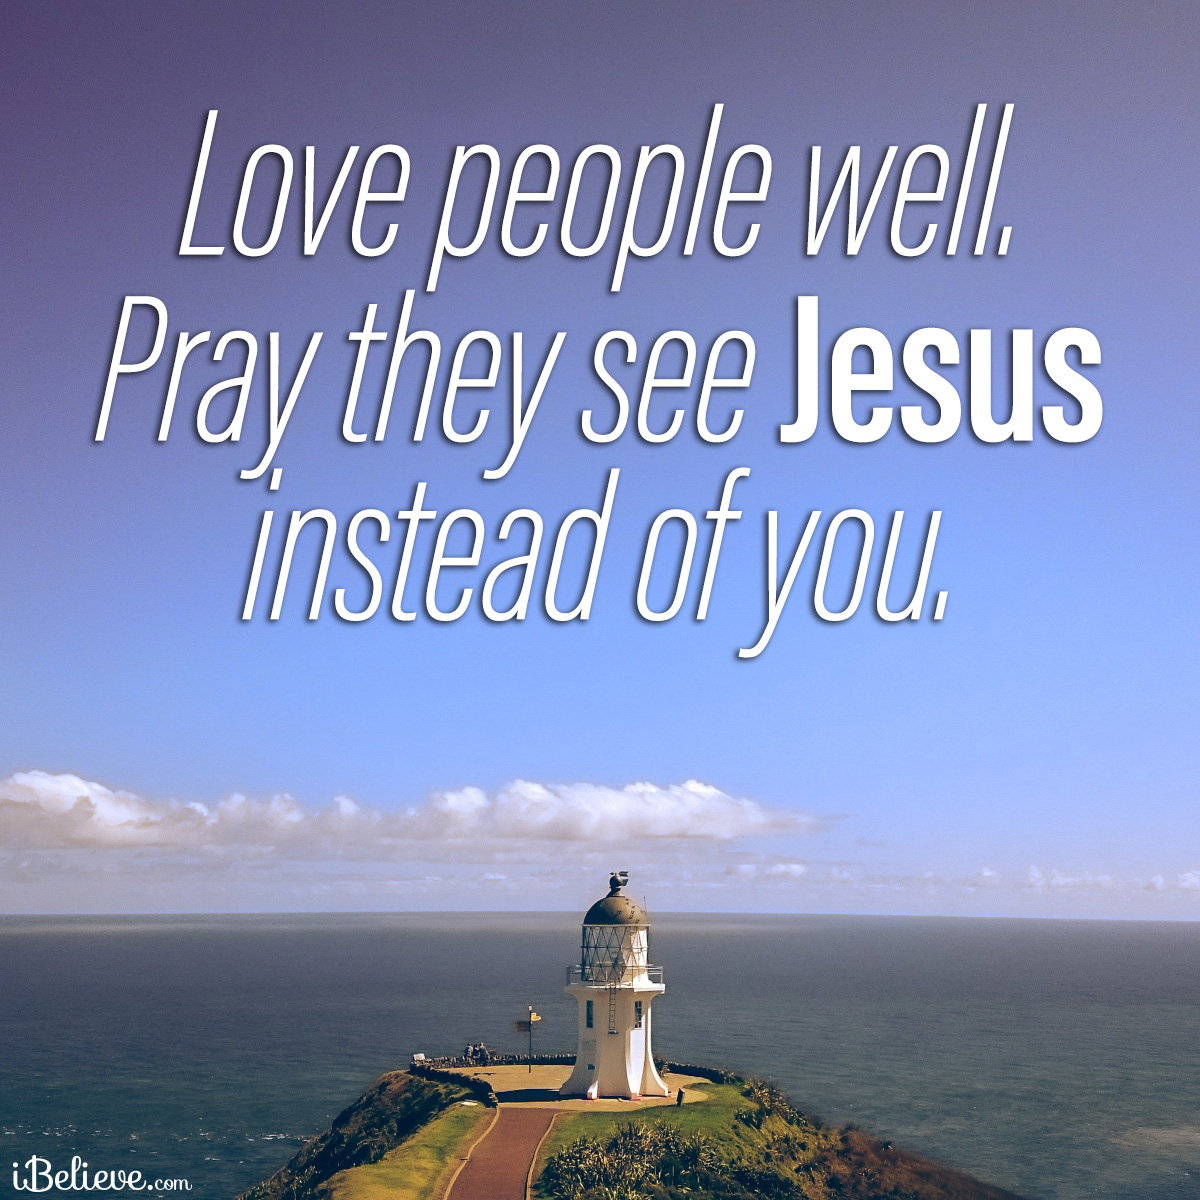 See Jesus not you, inspirational image